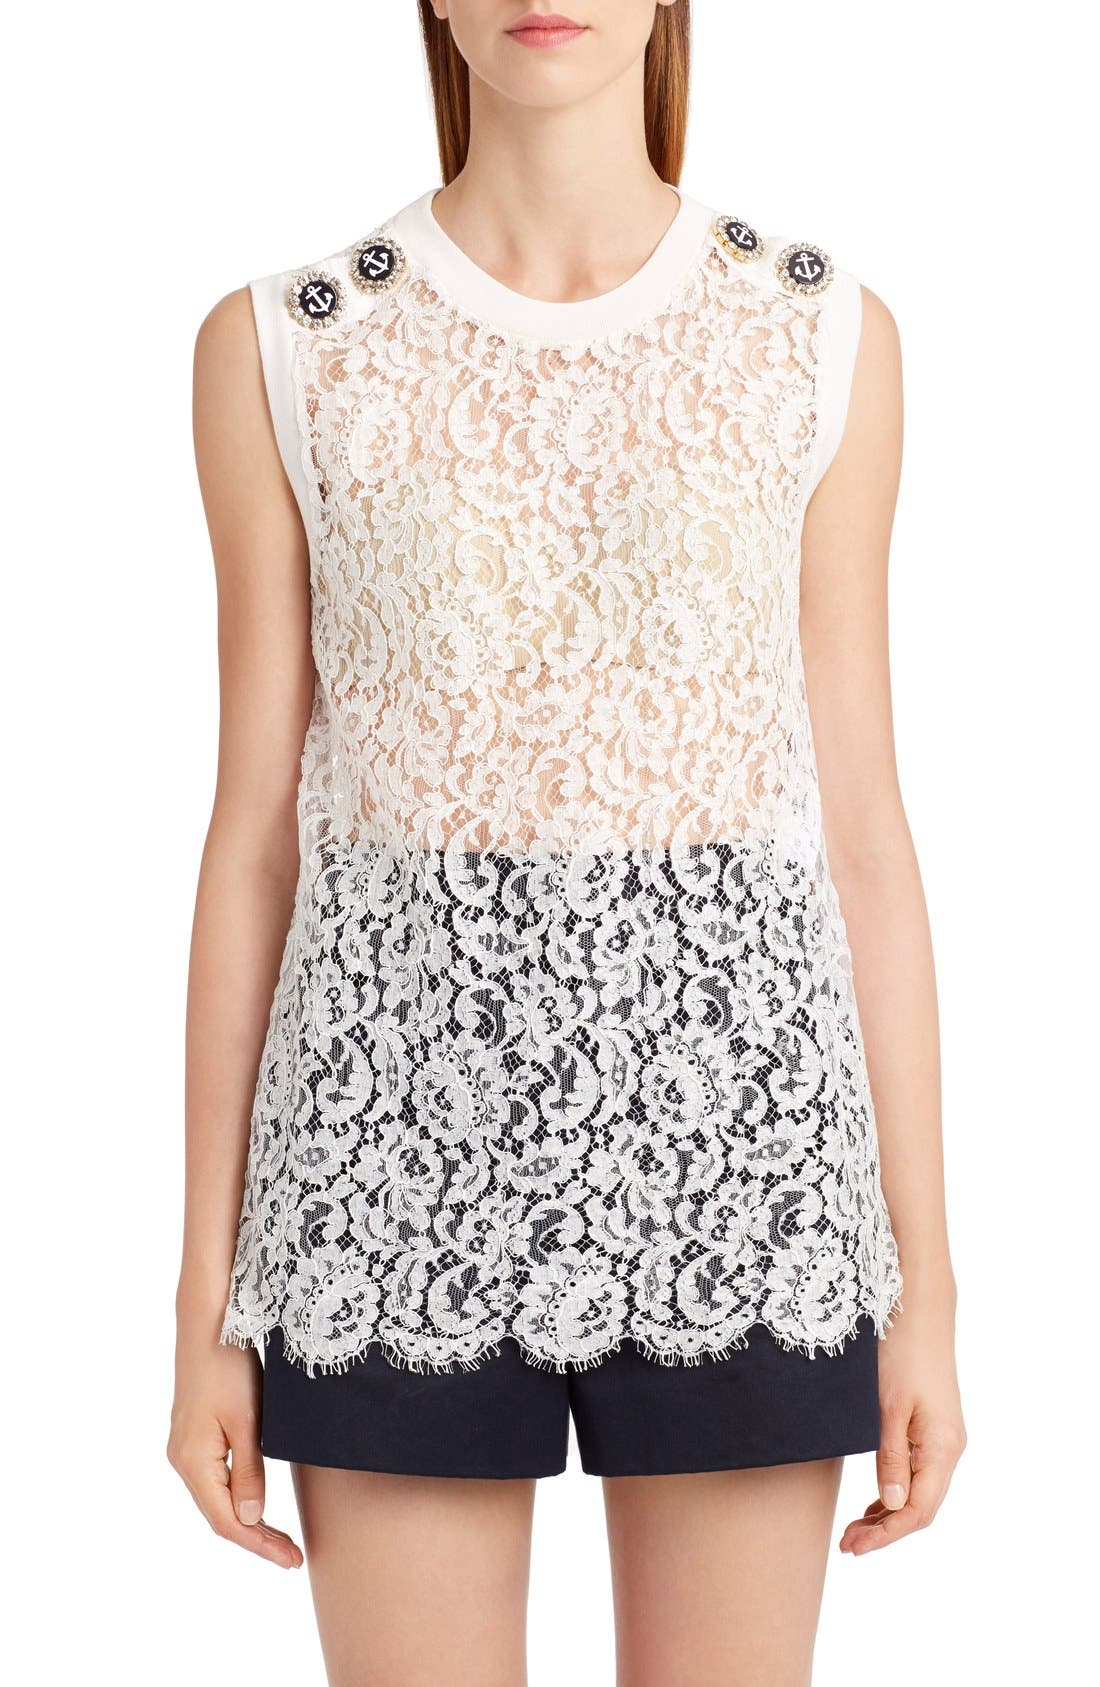 DOLCE&GABBANA Sleeveless Lace Top